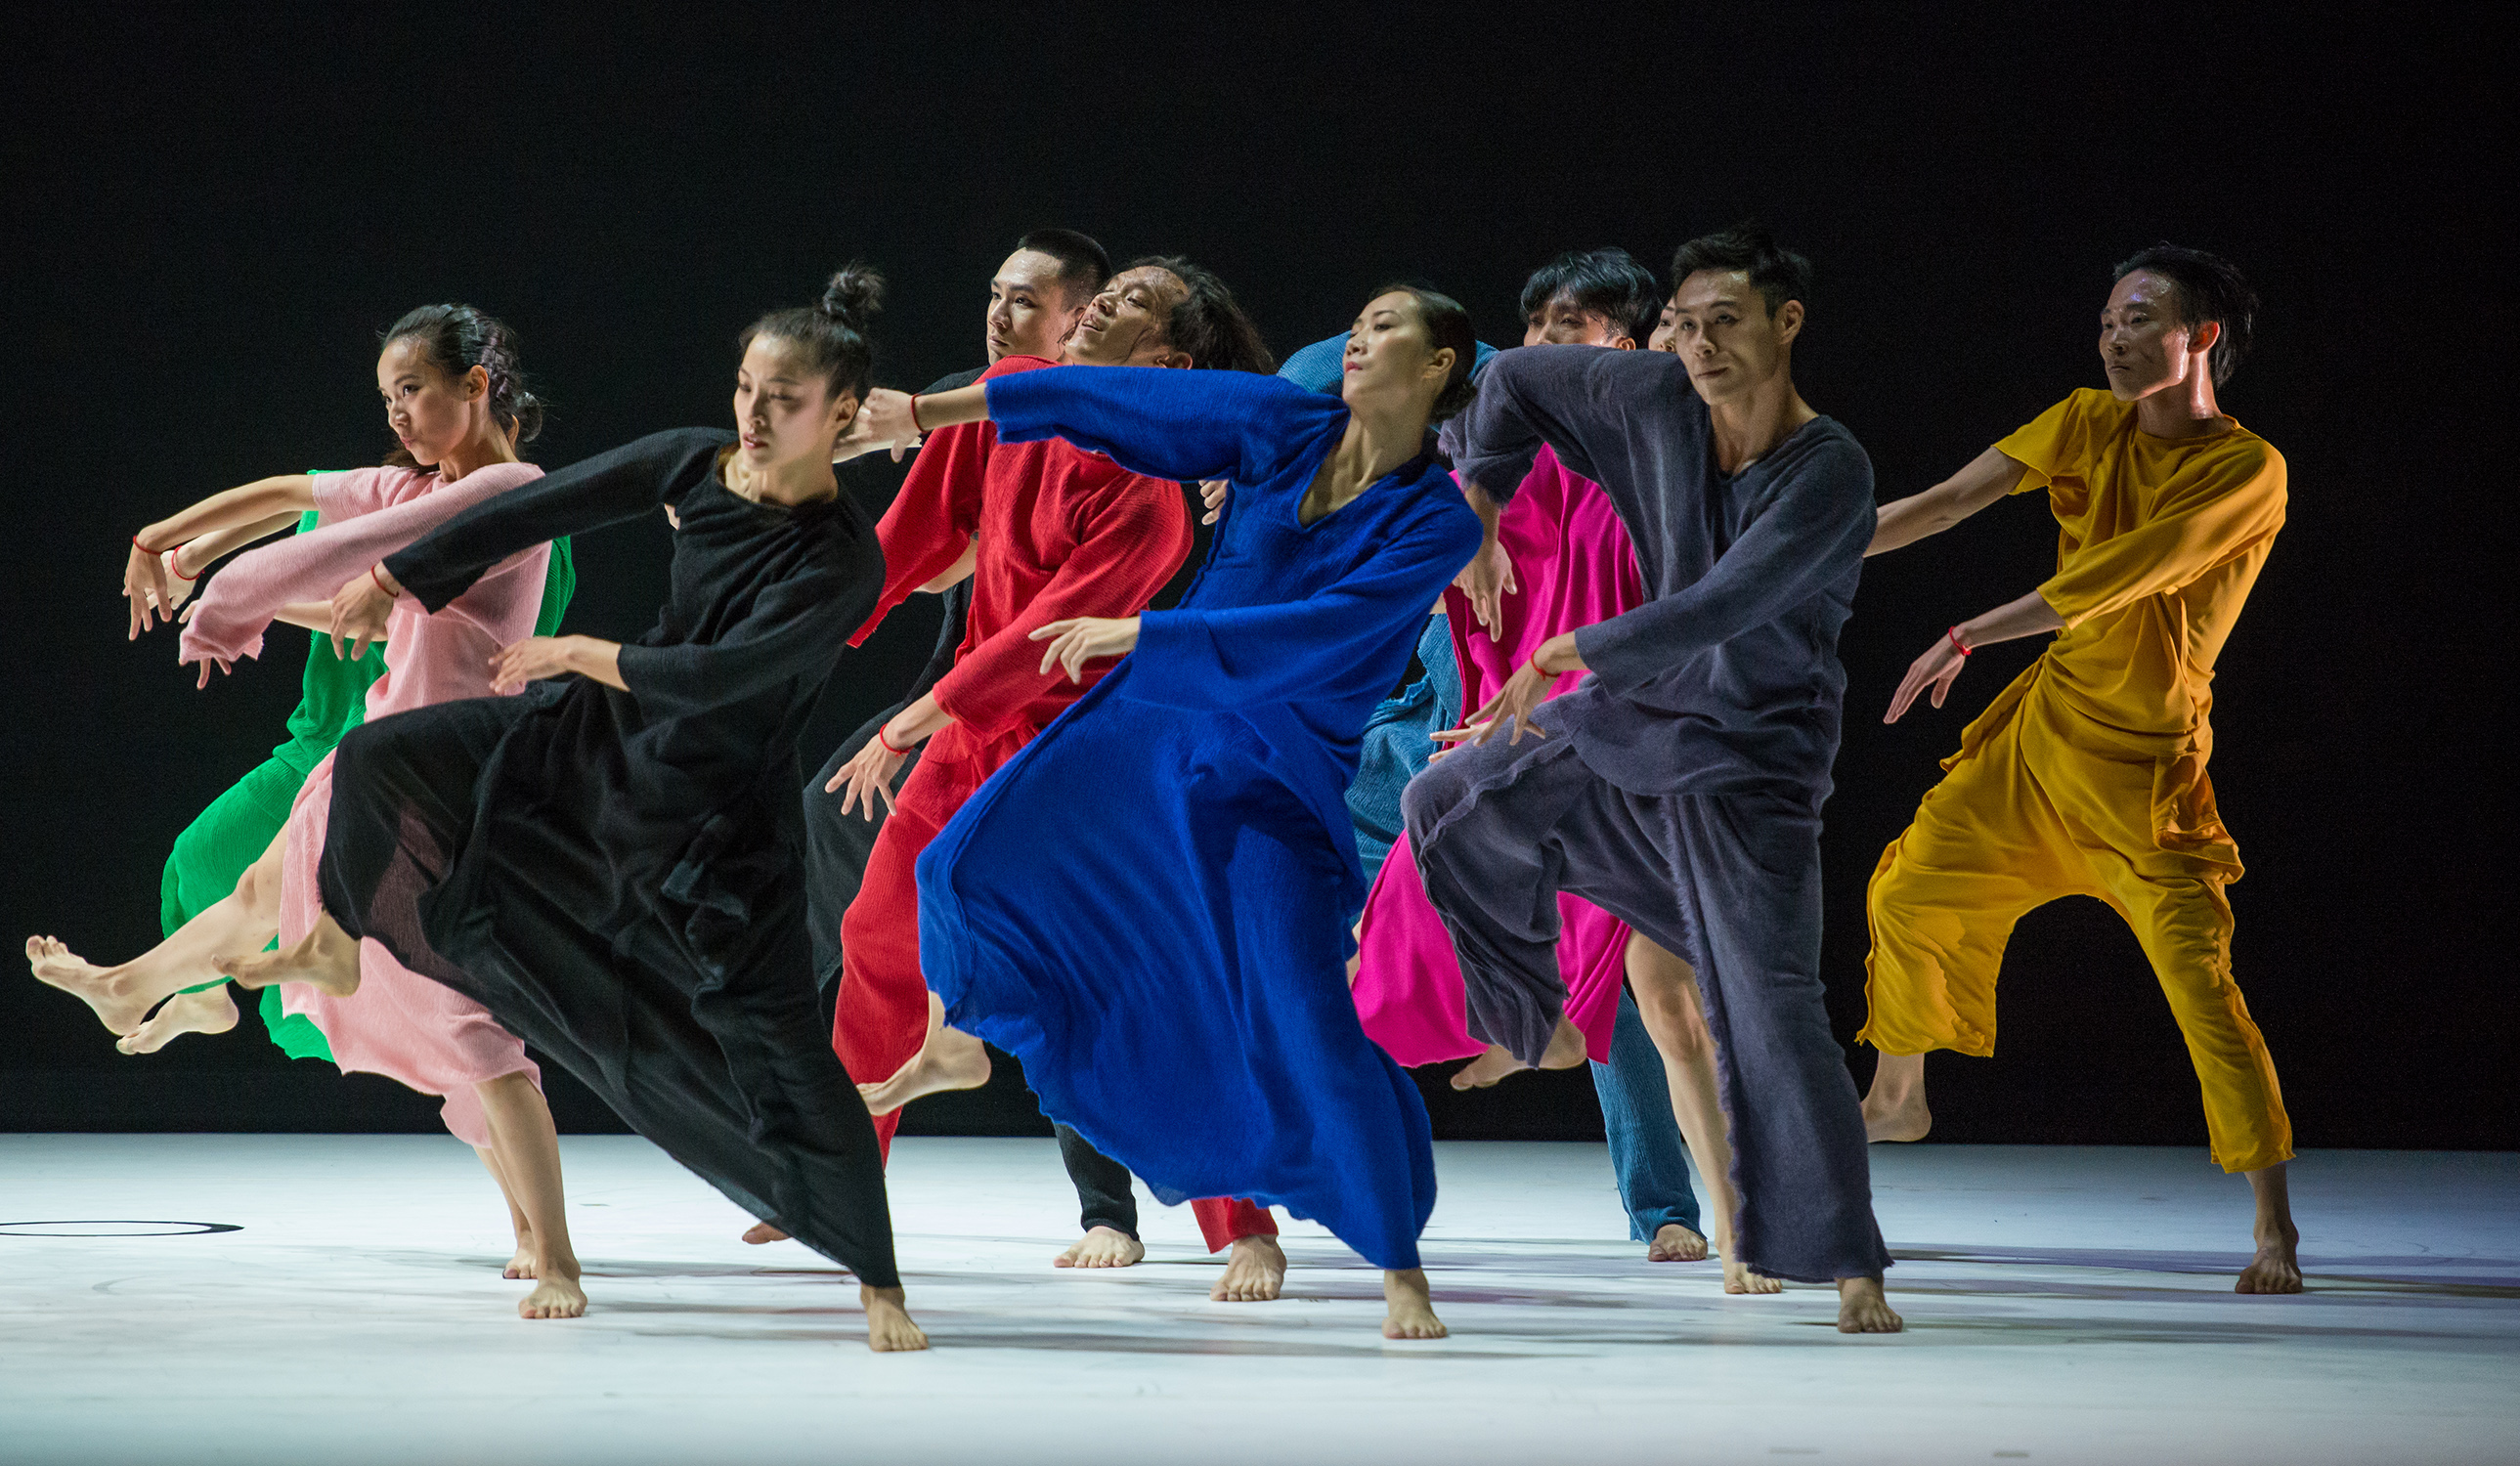 11Fall for Dance at City Center on October 7, 2016. Dance companies performing: Pictured: Cloud Gate 2 performing Beckoning (US Premiere), Choreography by Cheng Tsung-Lung